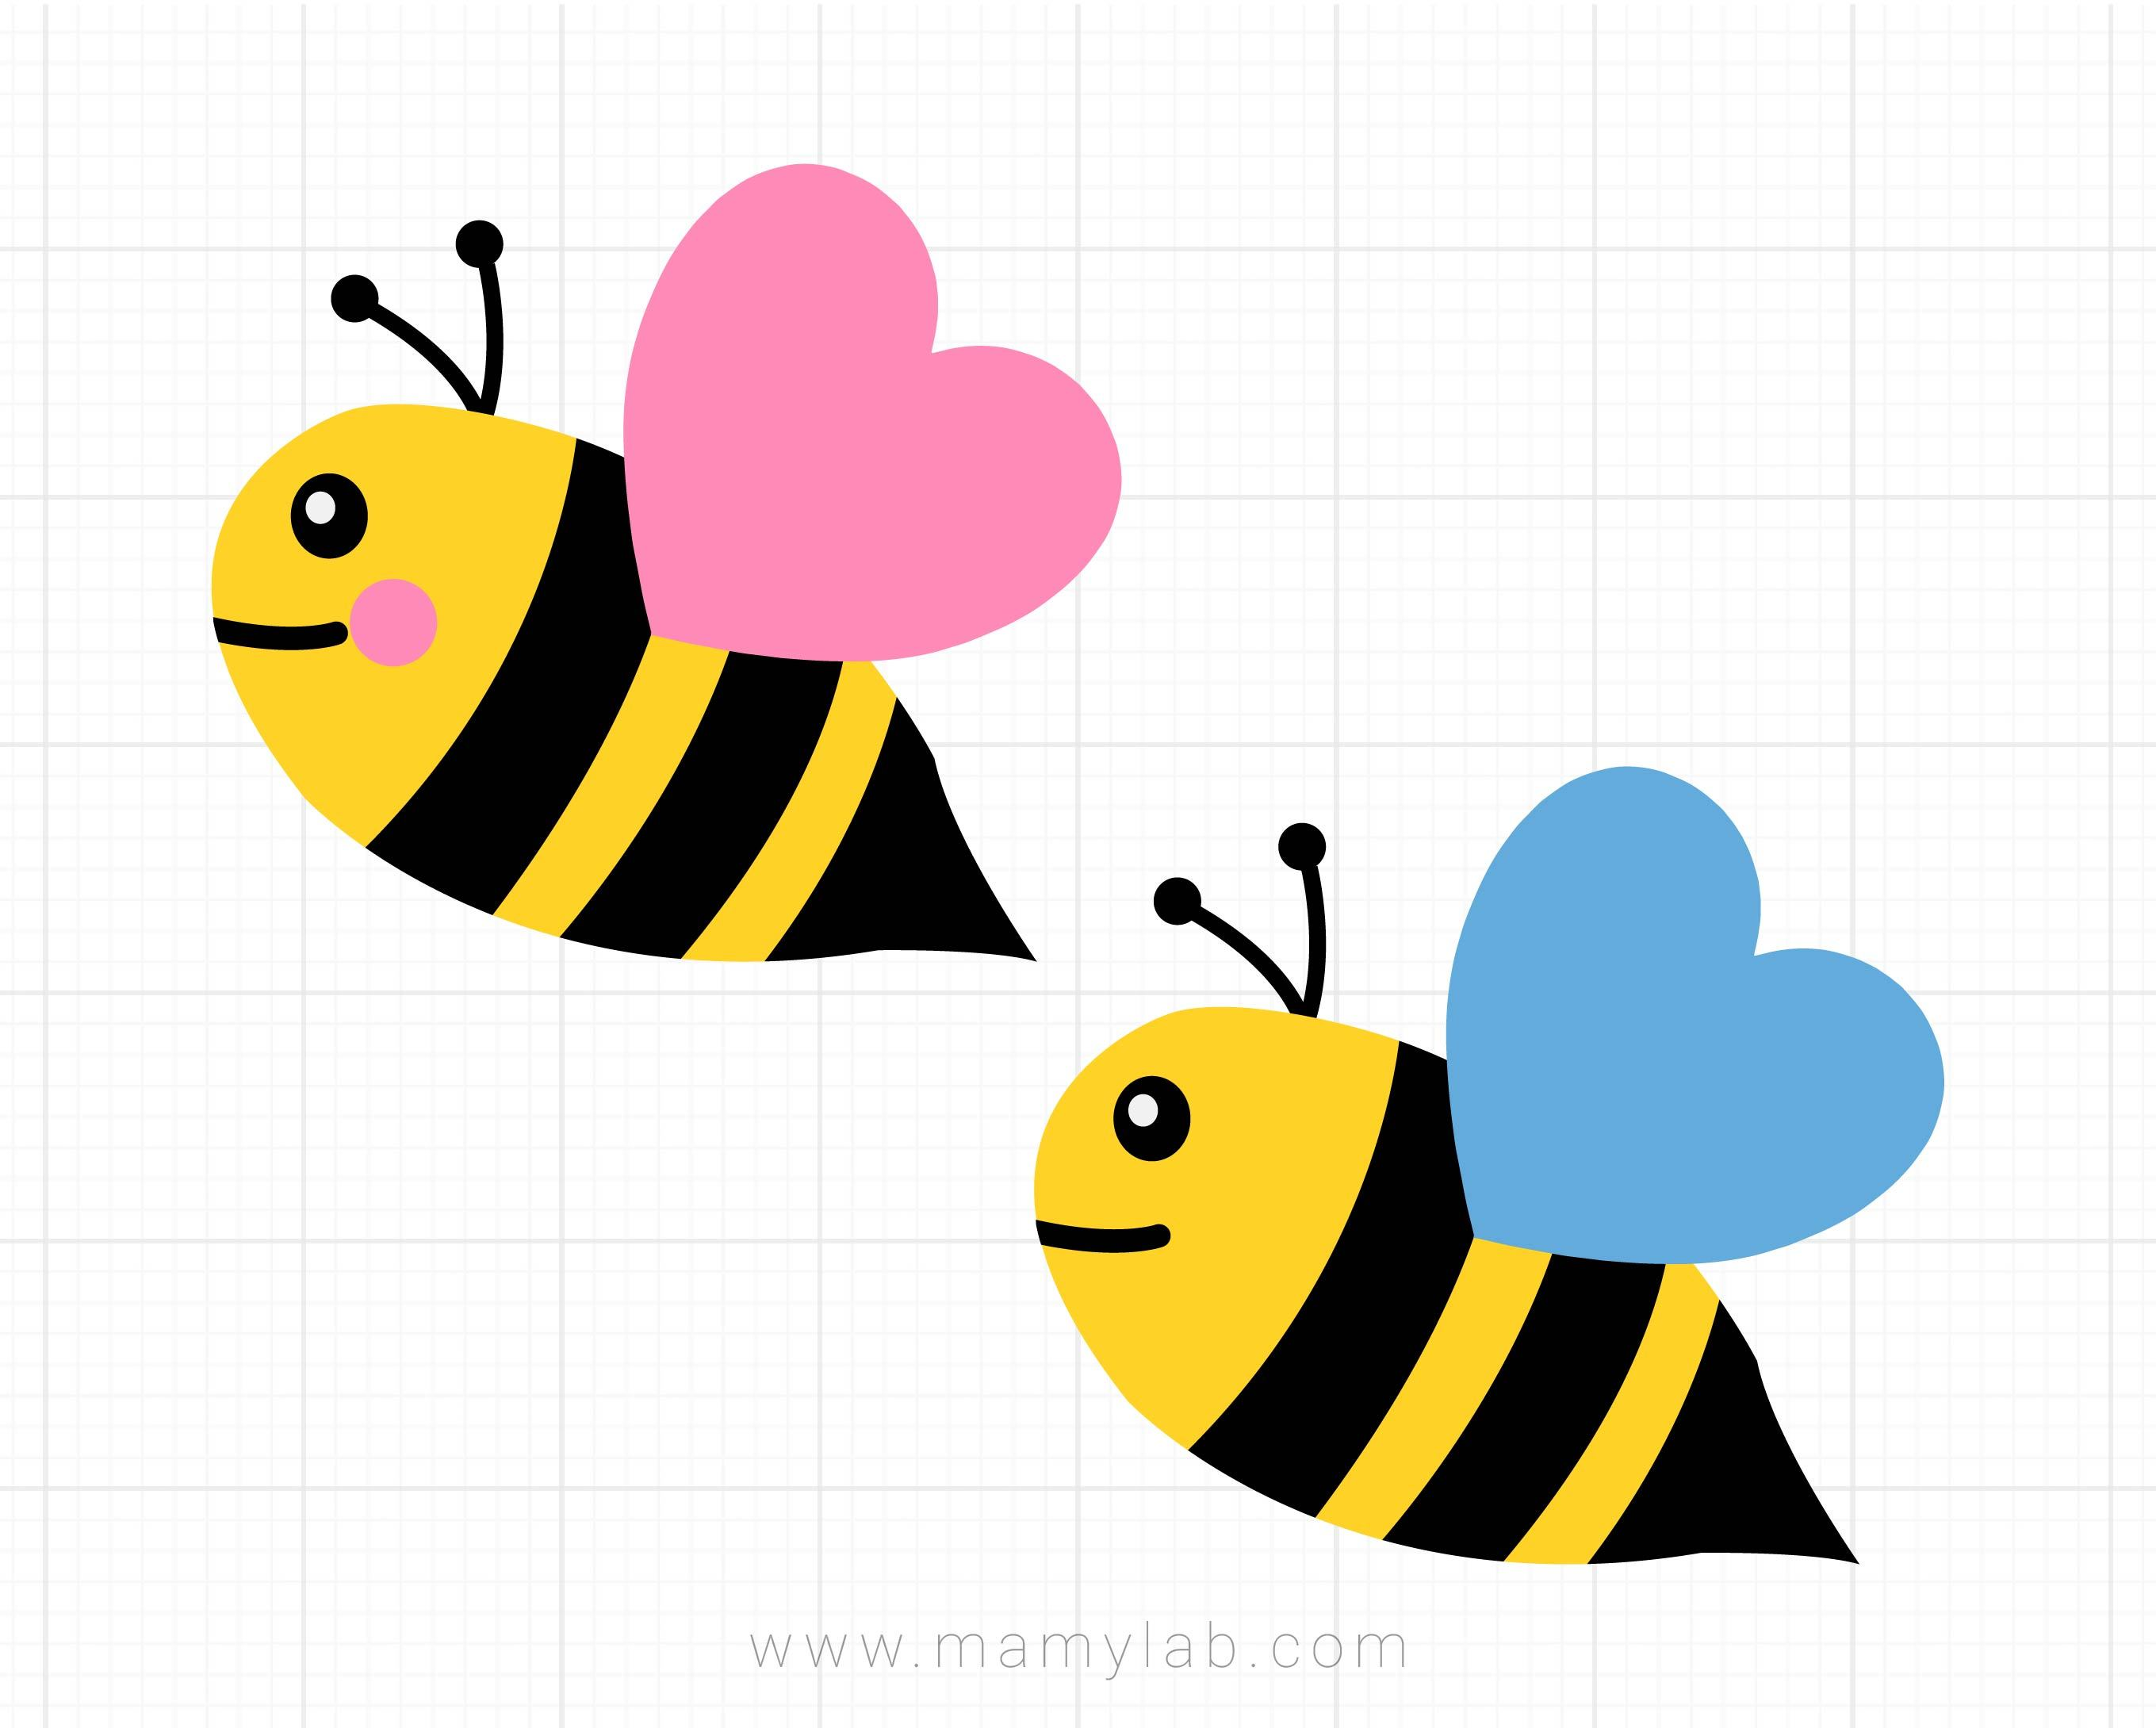 Bee Svg, Bee Girl Boy Svg, Bumble Bee Svg, Dxf, Baby, Kids, Newborn Svg,  Kawaii Bees Clipart, Spring Svg, Cricut & Silhouette Cut Files.